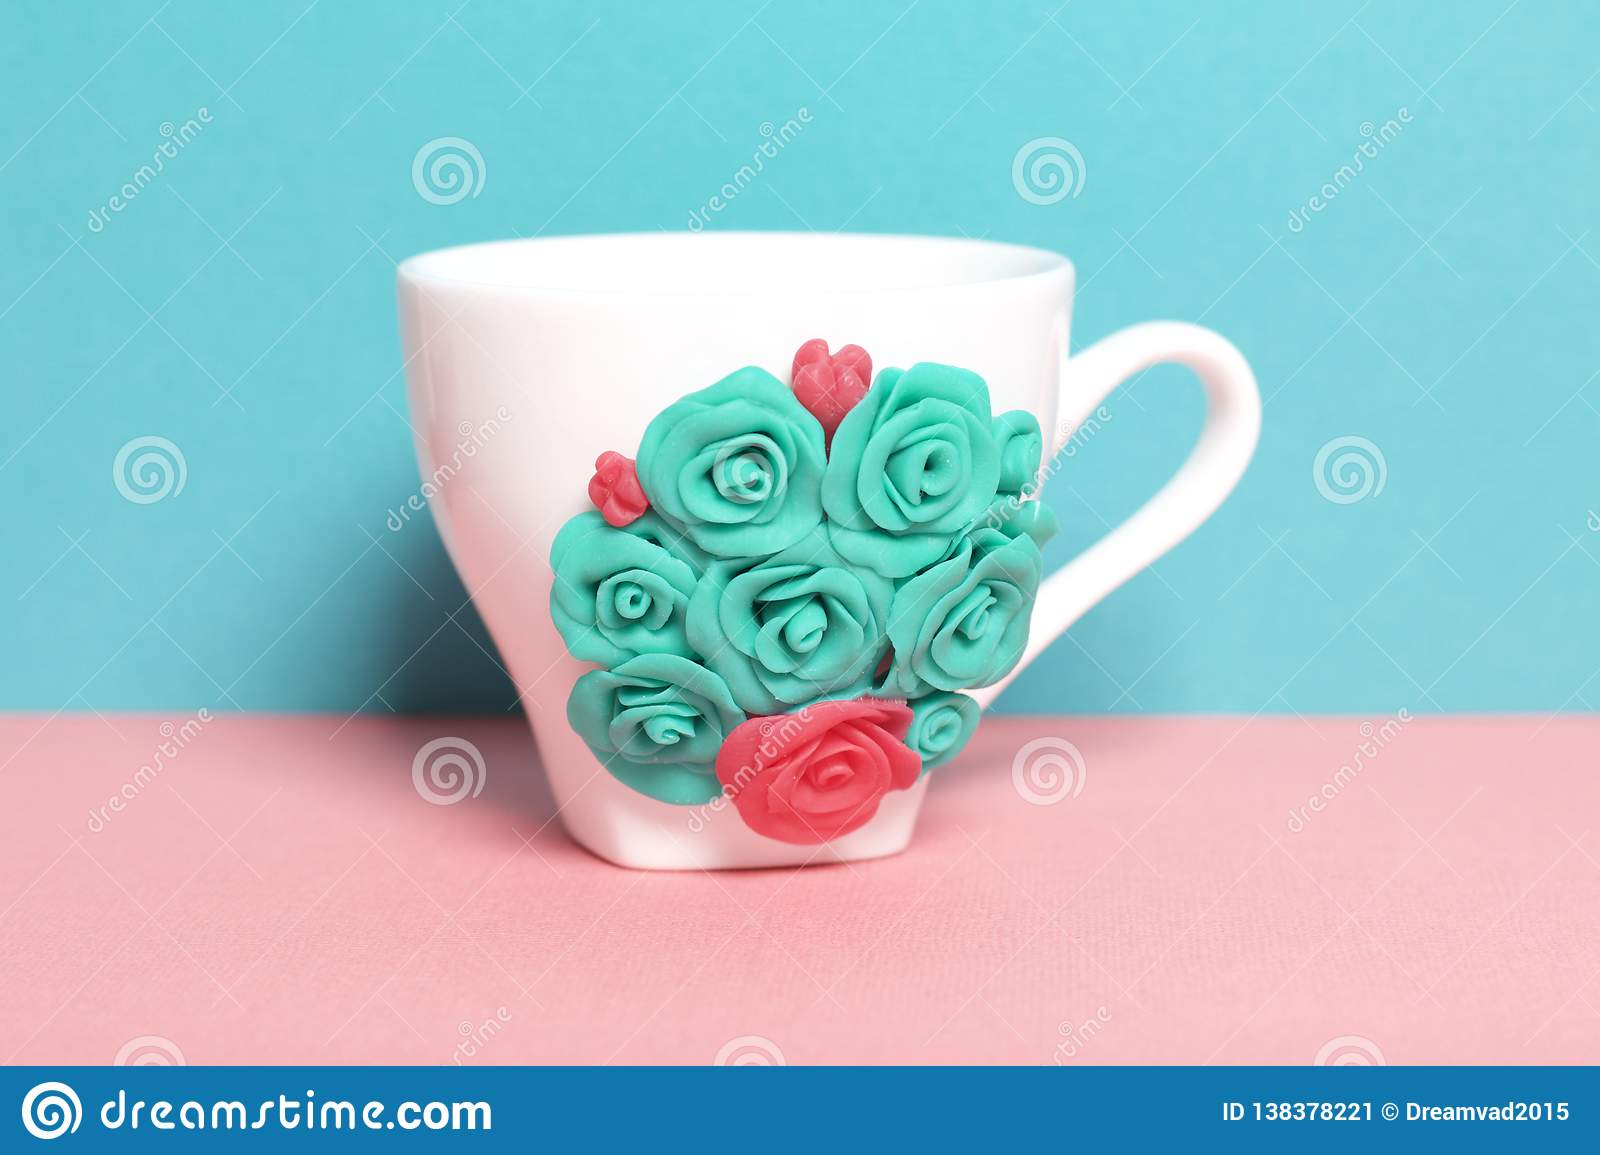 Mug Decorated With Flowers Made Of Polymer Clay Stock Image Image Of Sculpting Elements 138378221